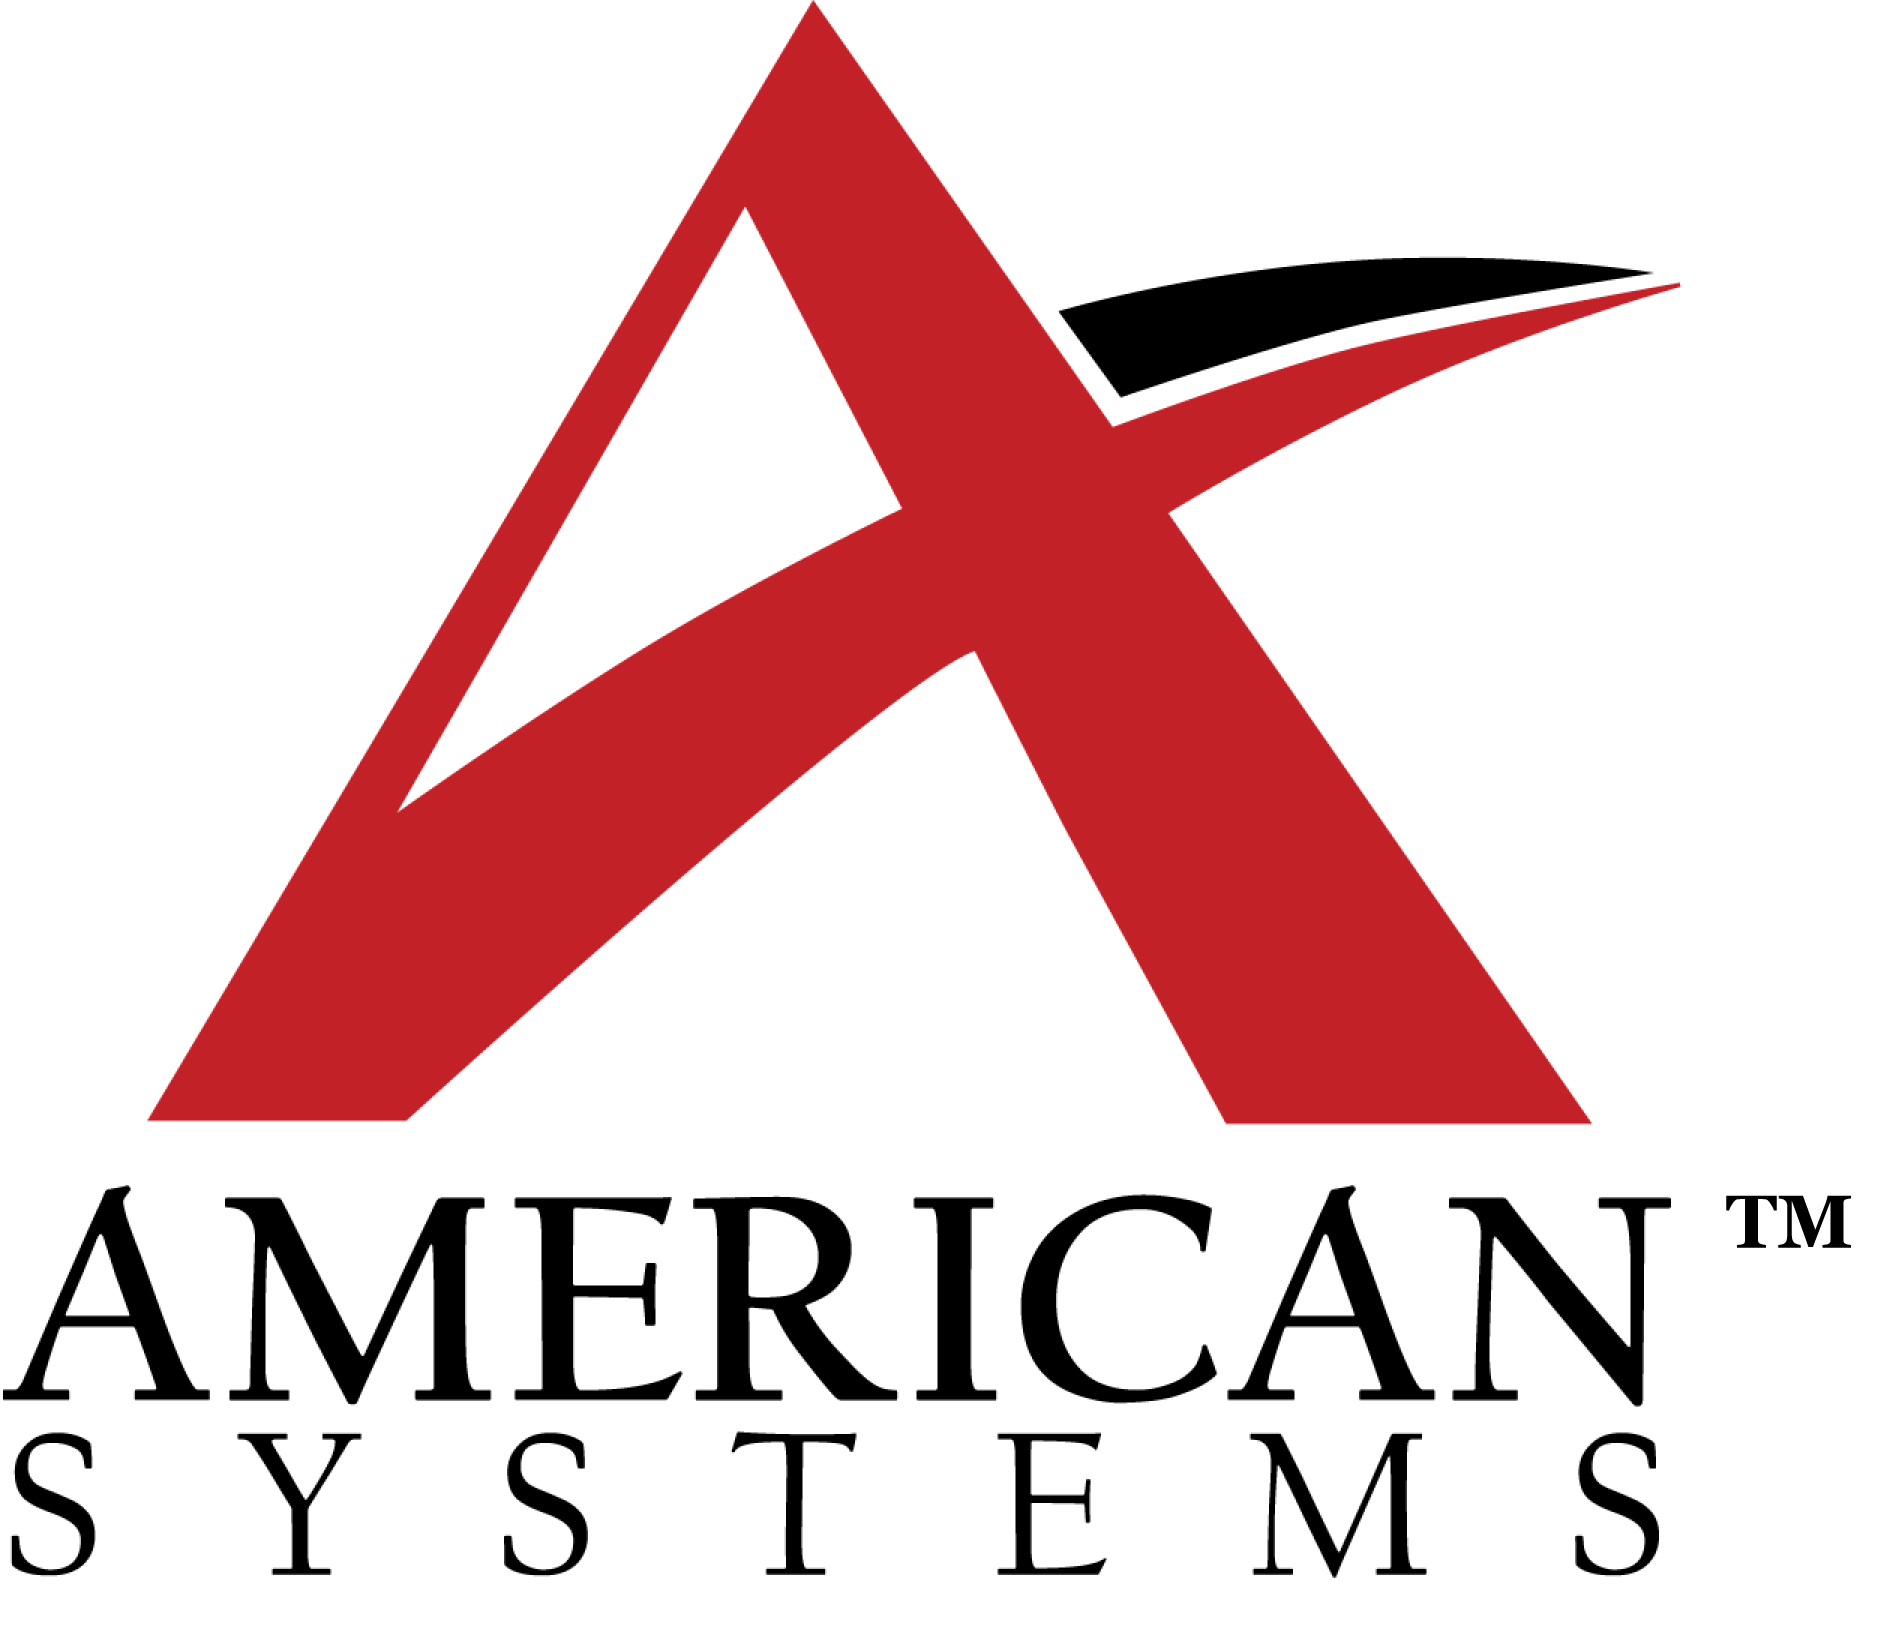 american systems square tm logo